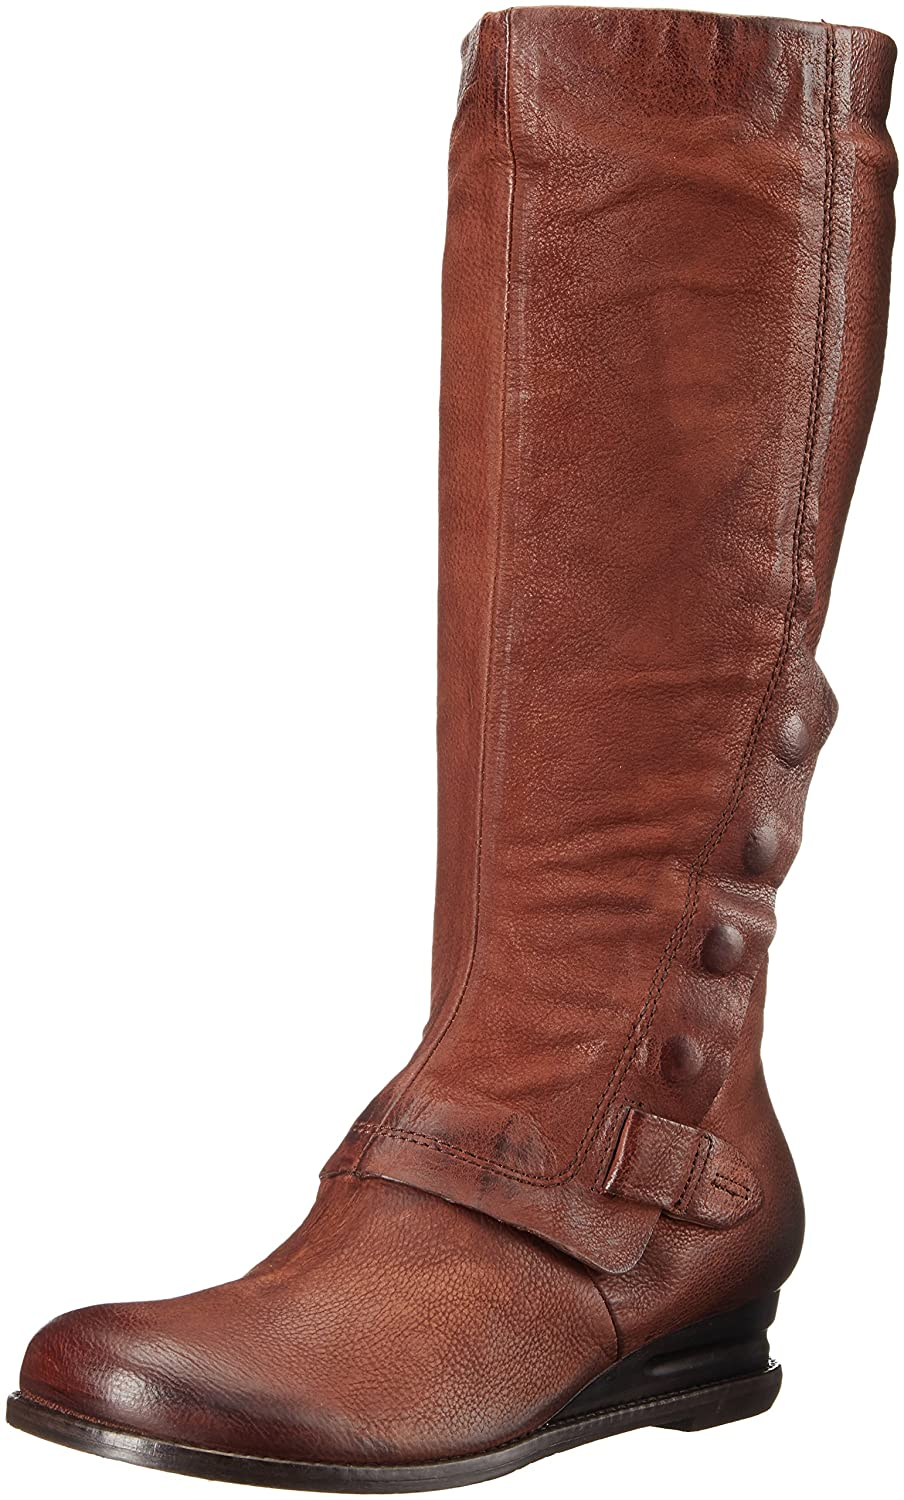 Miz Mooz Women's Bennett Riding Boot B01EJM0KN6 10 B(M) US|Brandy